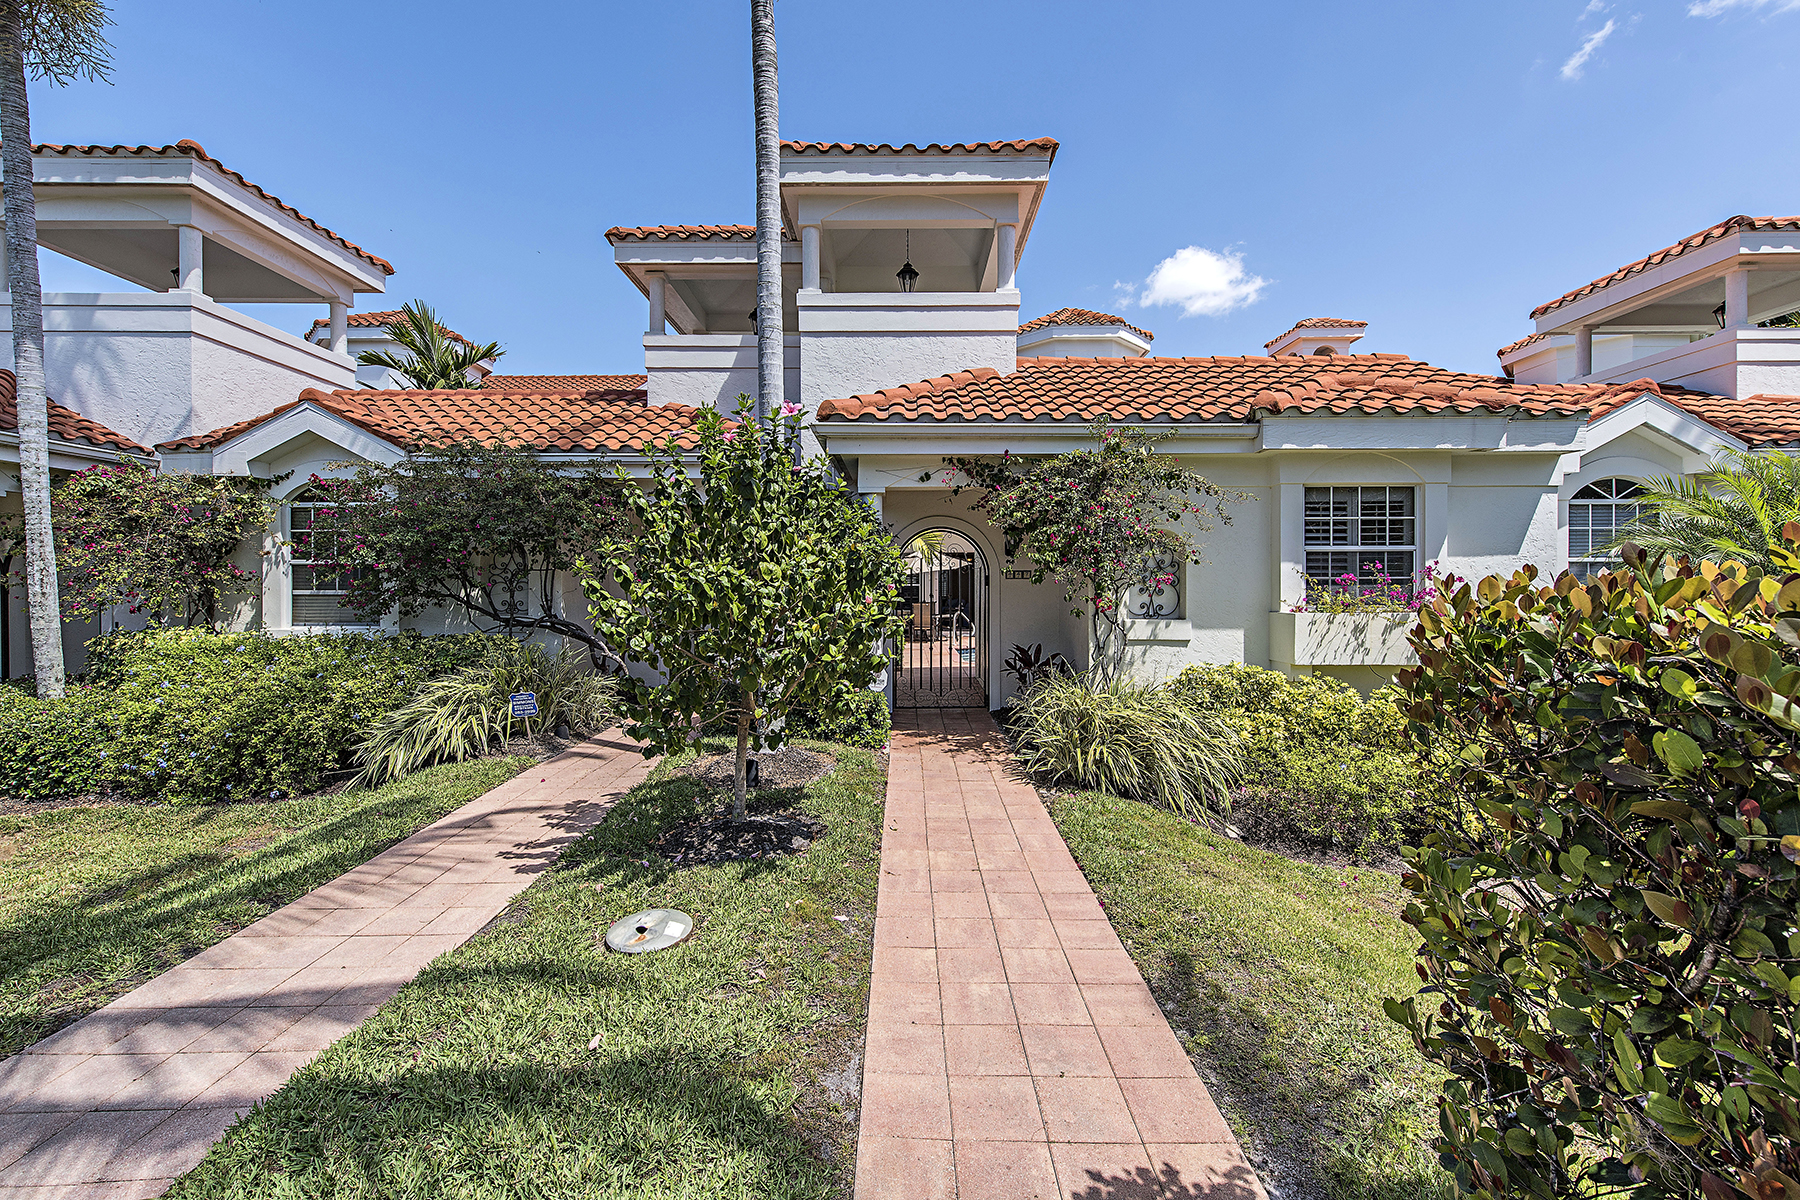 Townhouse for Sale at VILLAS DEL MAR 447 2nd Ave S E-1 Old Naples, Naples, Florida, 34102 United States